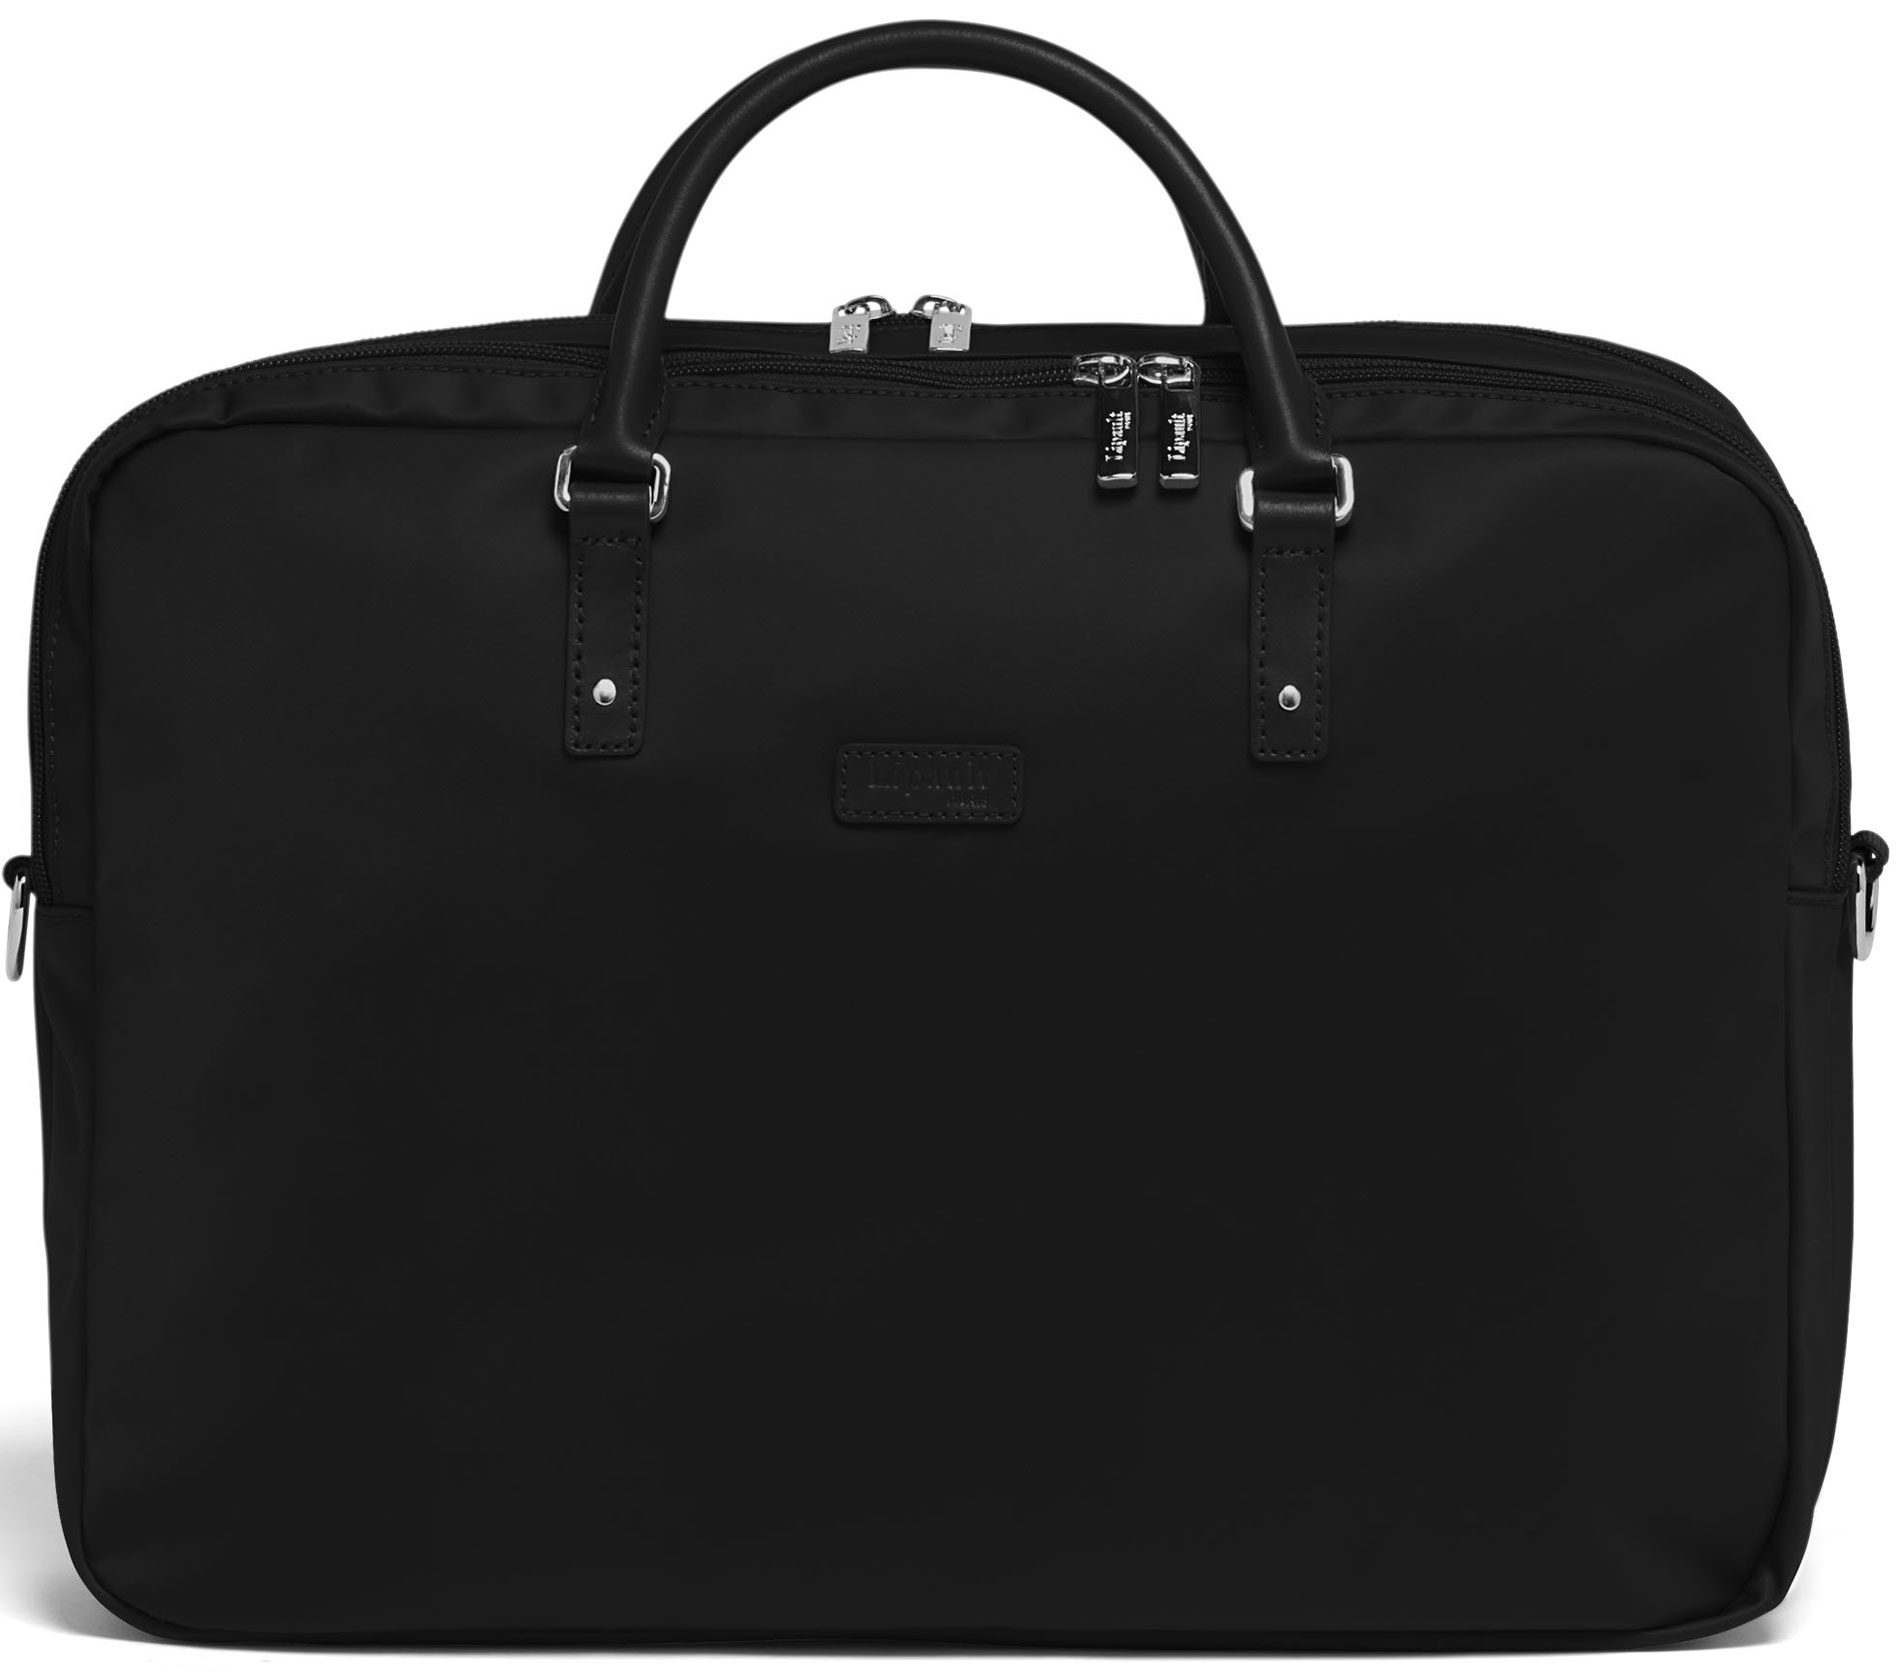 LIPAULT LADY PLUME Bagage cabine